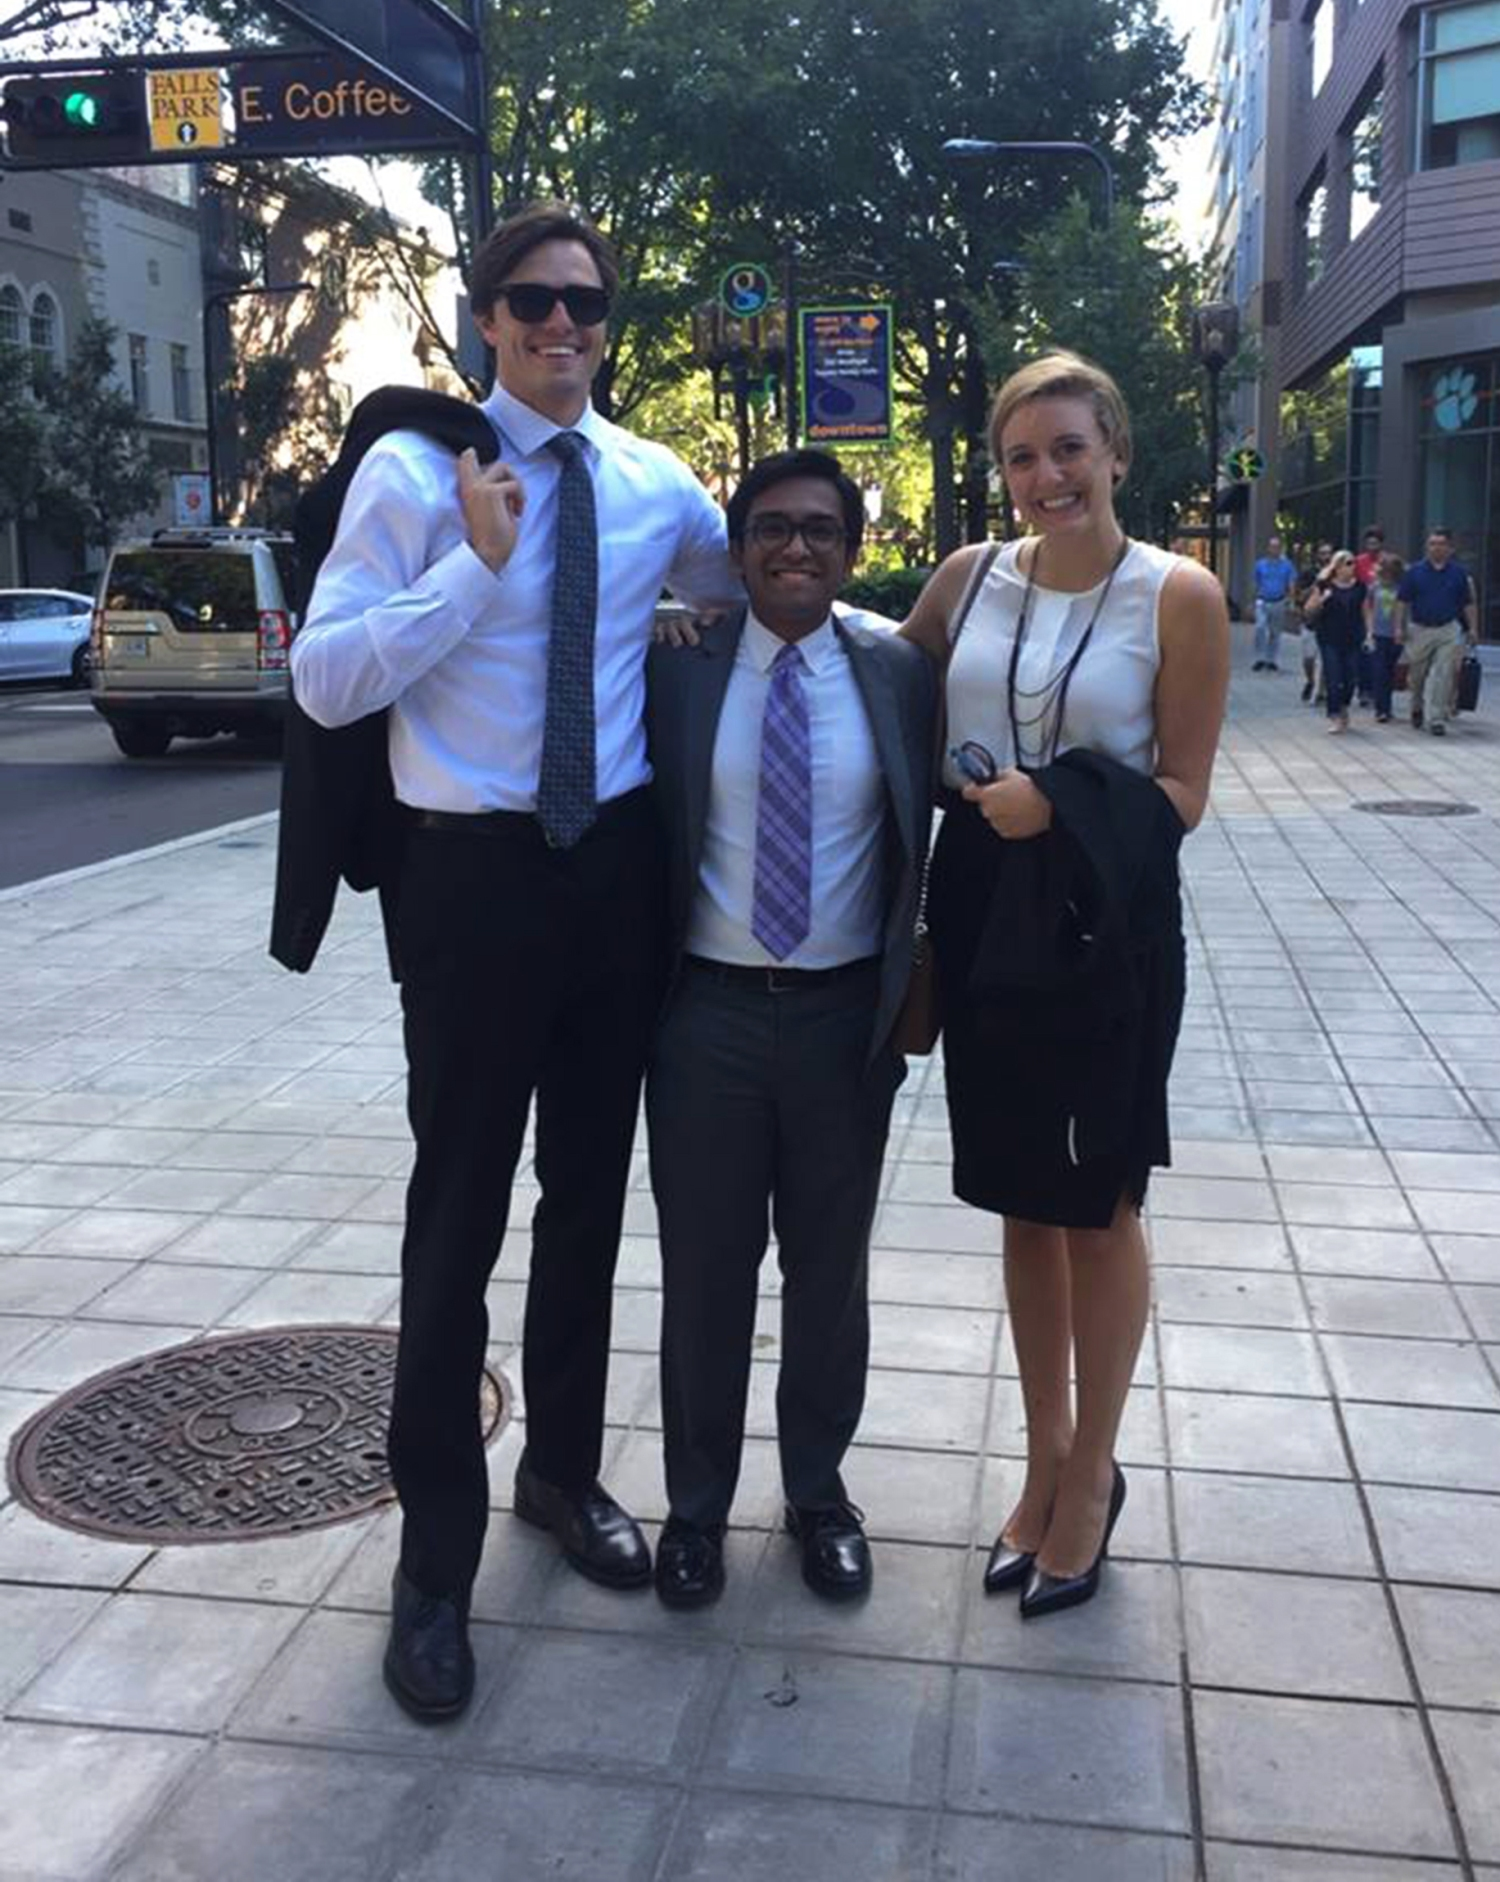 Left to right Furman students Ben Longnecker, '17, Sulaiman Ahmad, '18 and Katherine West, '19, after the afternoon hearing Oct. 6 to determine if college students in Greenville County can register to vote with an on-campus address. Photo courtesy of Ben Longnecker.